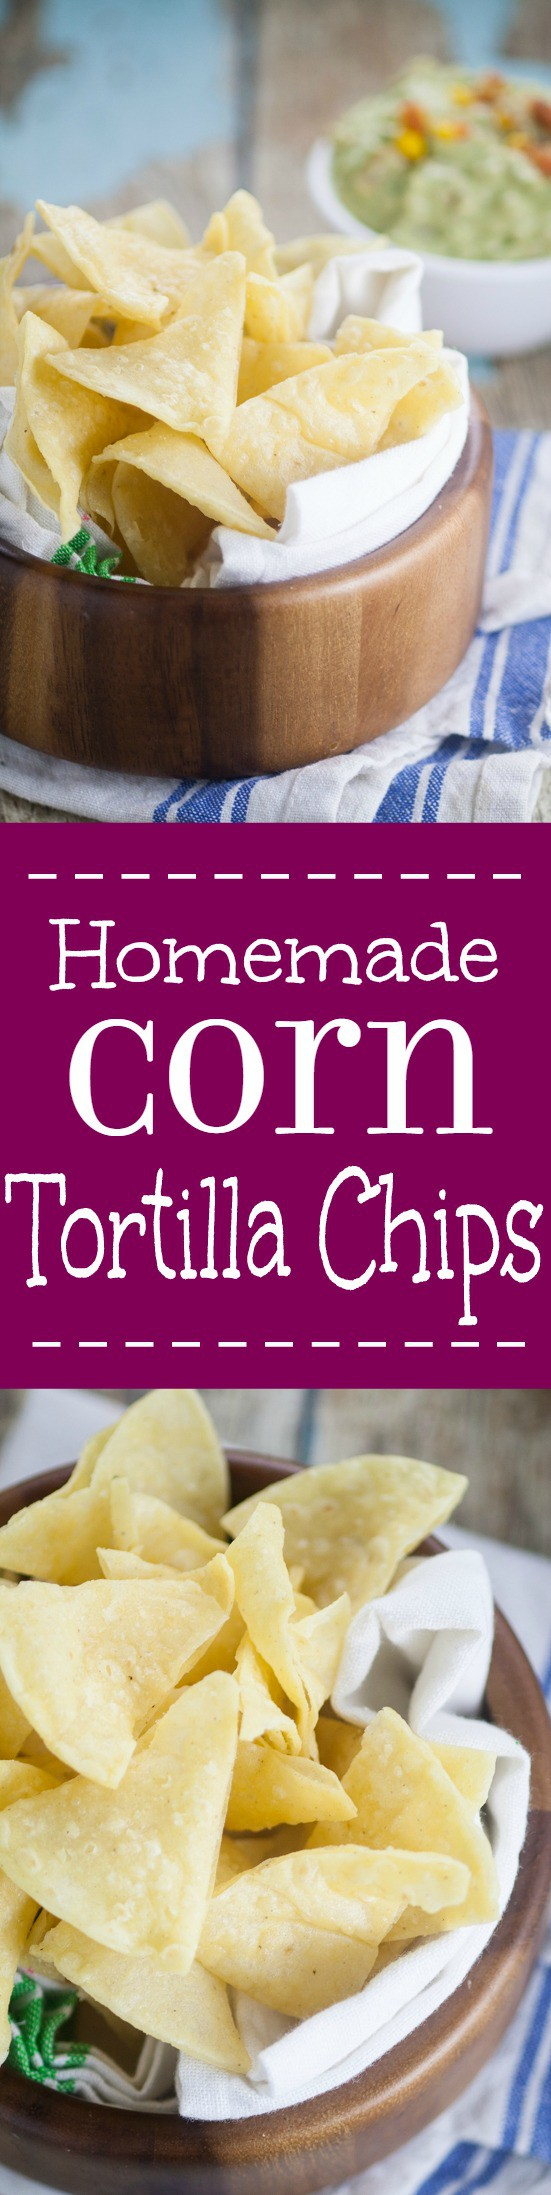 Homemade Corn Tortilla Chips are easy to make! A simple recipe to make your own Homemade Corn Tortilla Chips that are absolutely delicious.  Store bought tortilla chips just can't compete with these crunchy fresh ones!